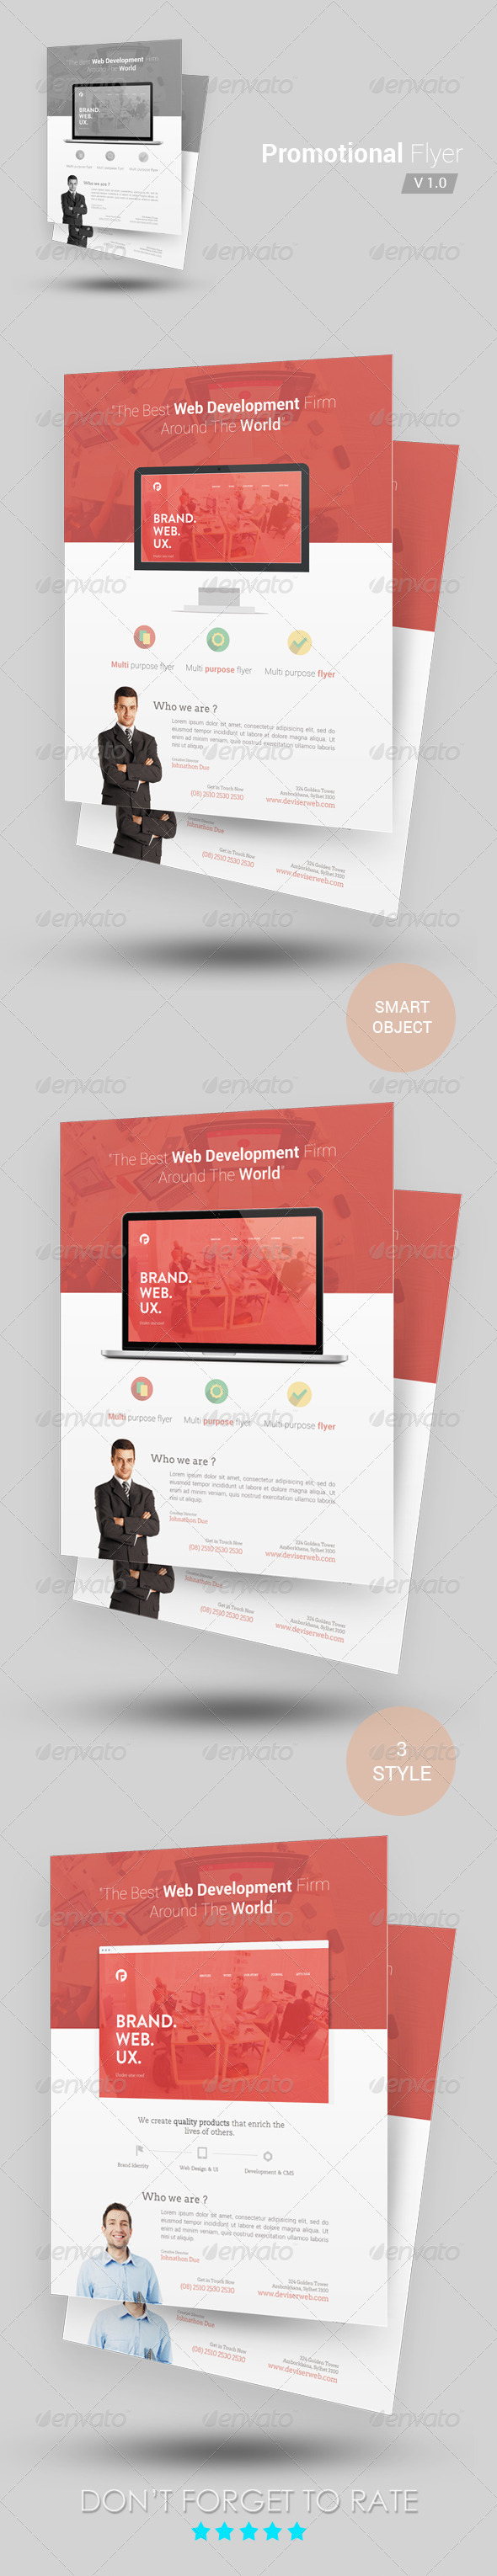 GraphicRiver Promotional Flyer Template 6679193